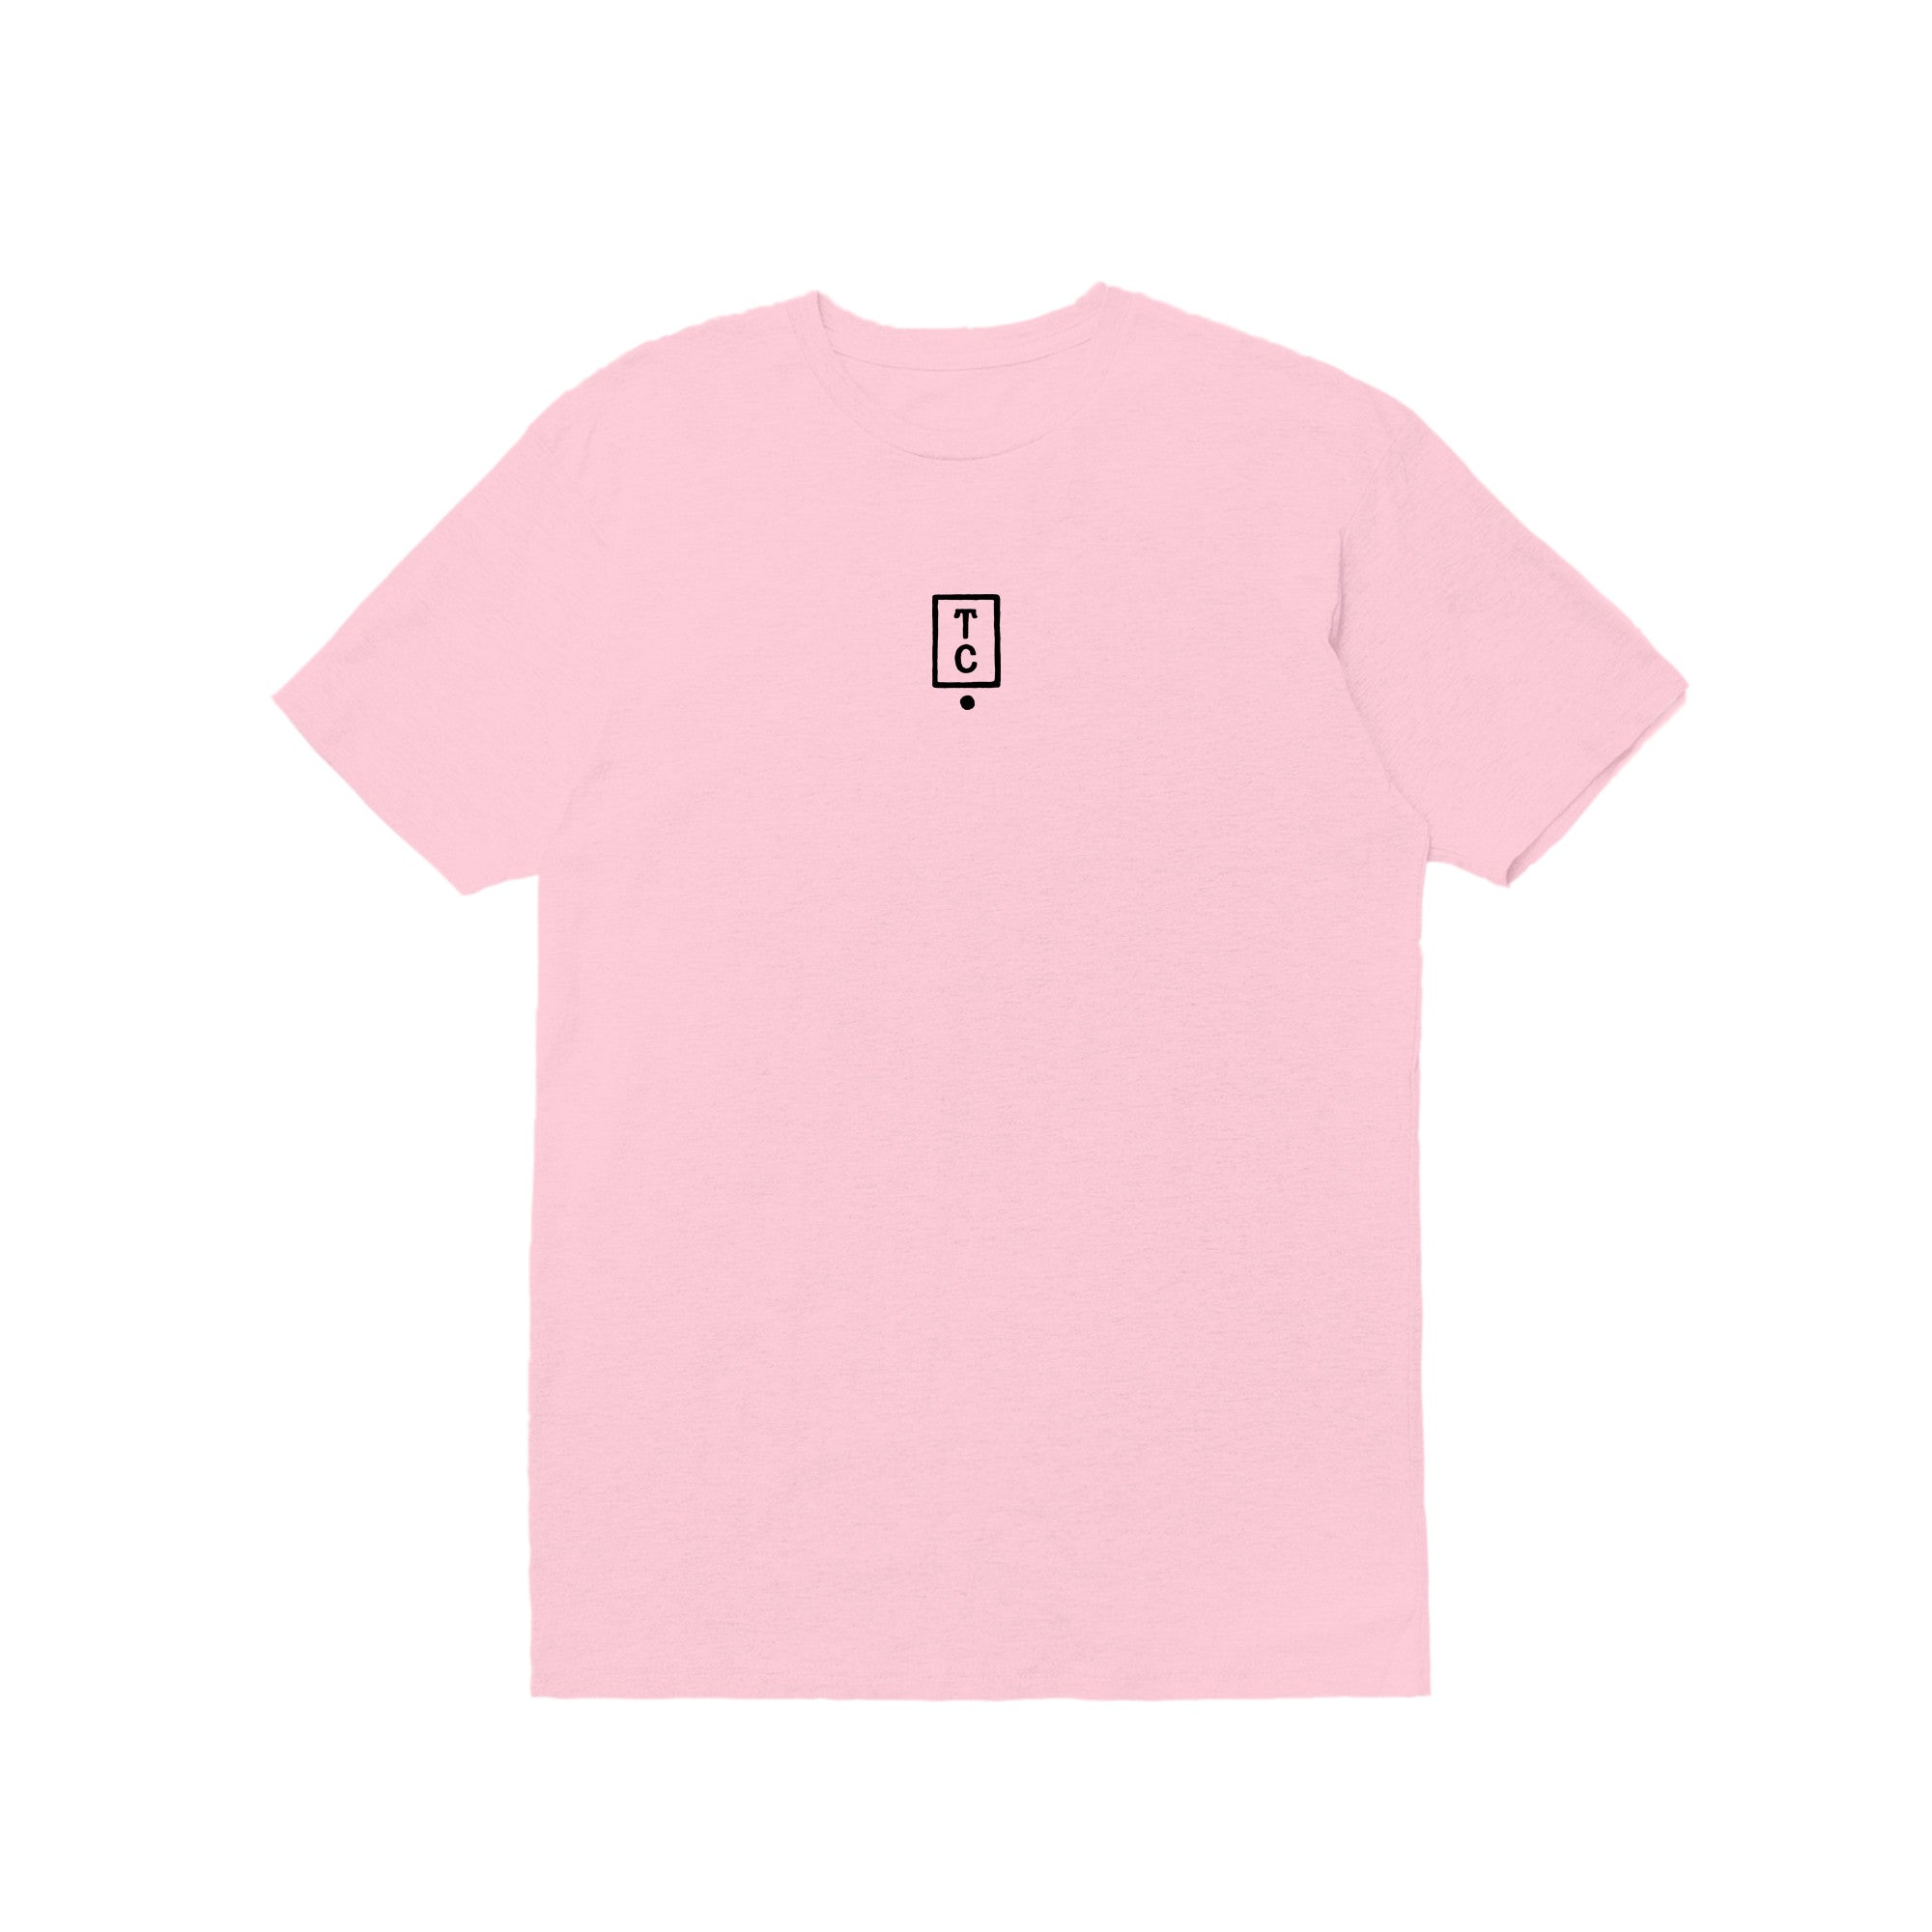 Photographer Person Tee - Light Pink